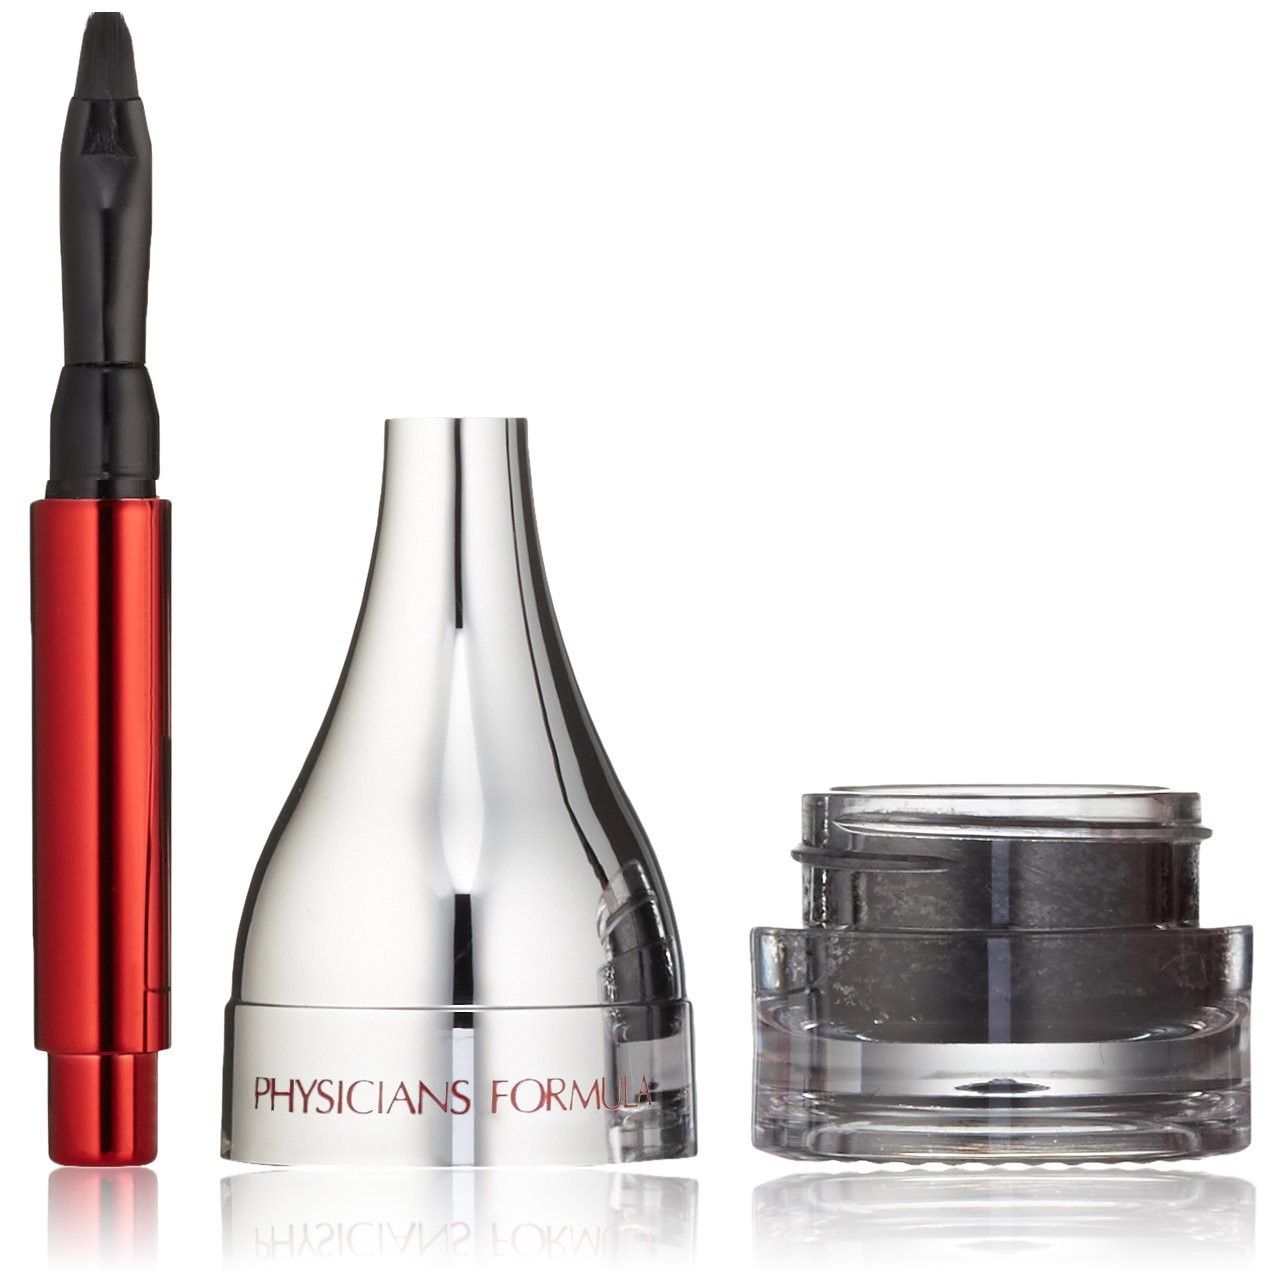 Physicians Formula Eye Booster 2 2-in-1 Lash Boosting Cushion Eyeliner + Serum - Ultra Black